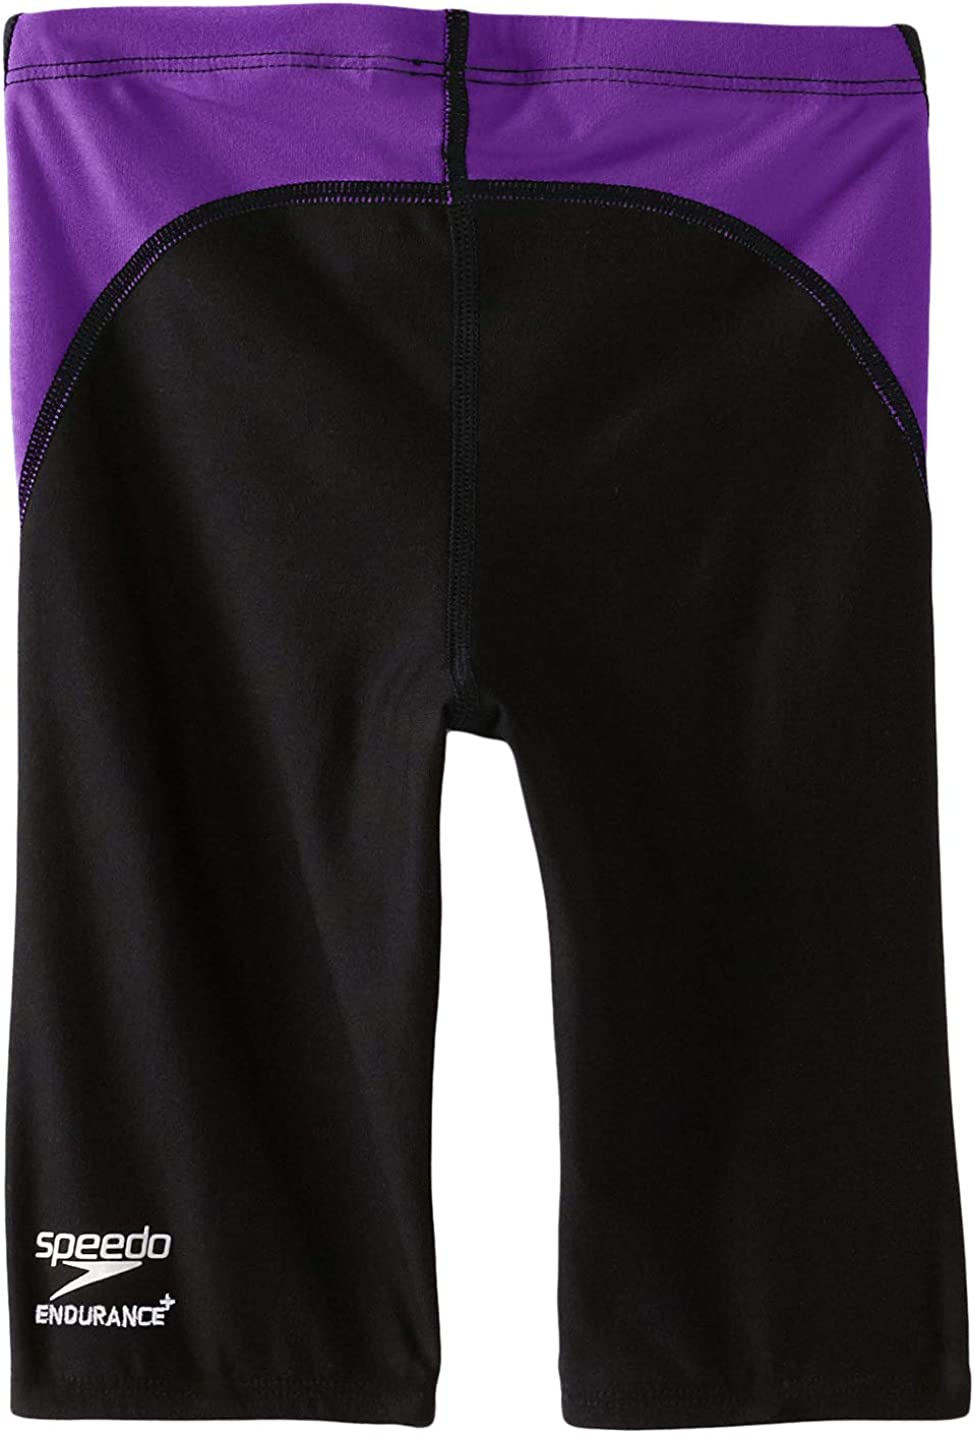 Sparx Men/'s Athletic Training Jammer Swim Suit Endurance Sport Board Shorts Swim